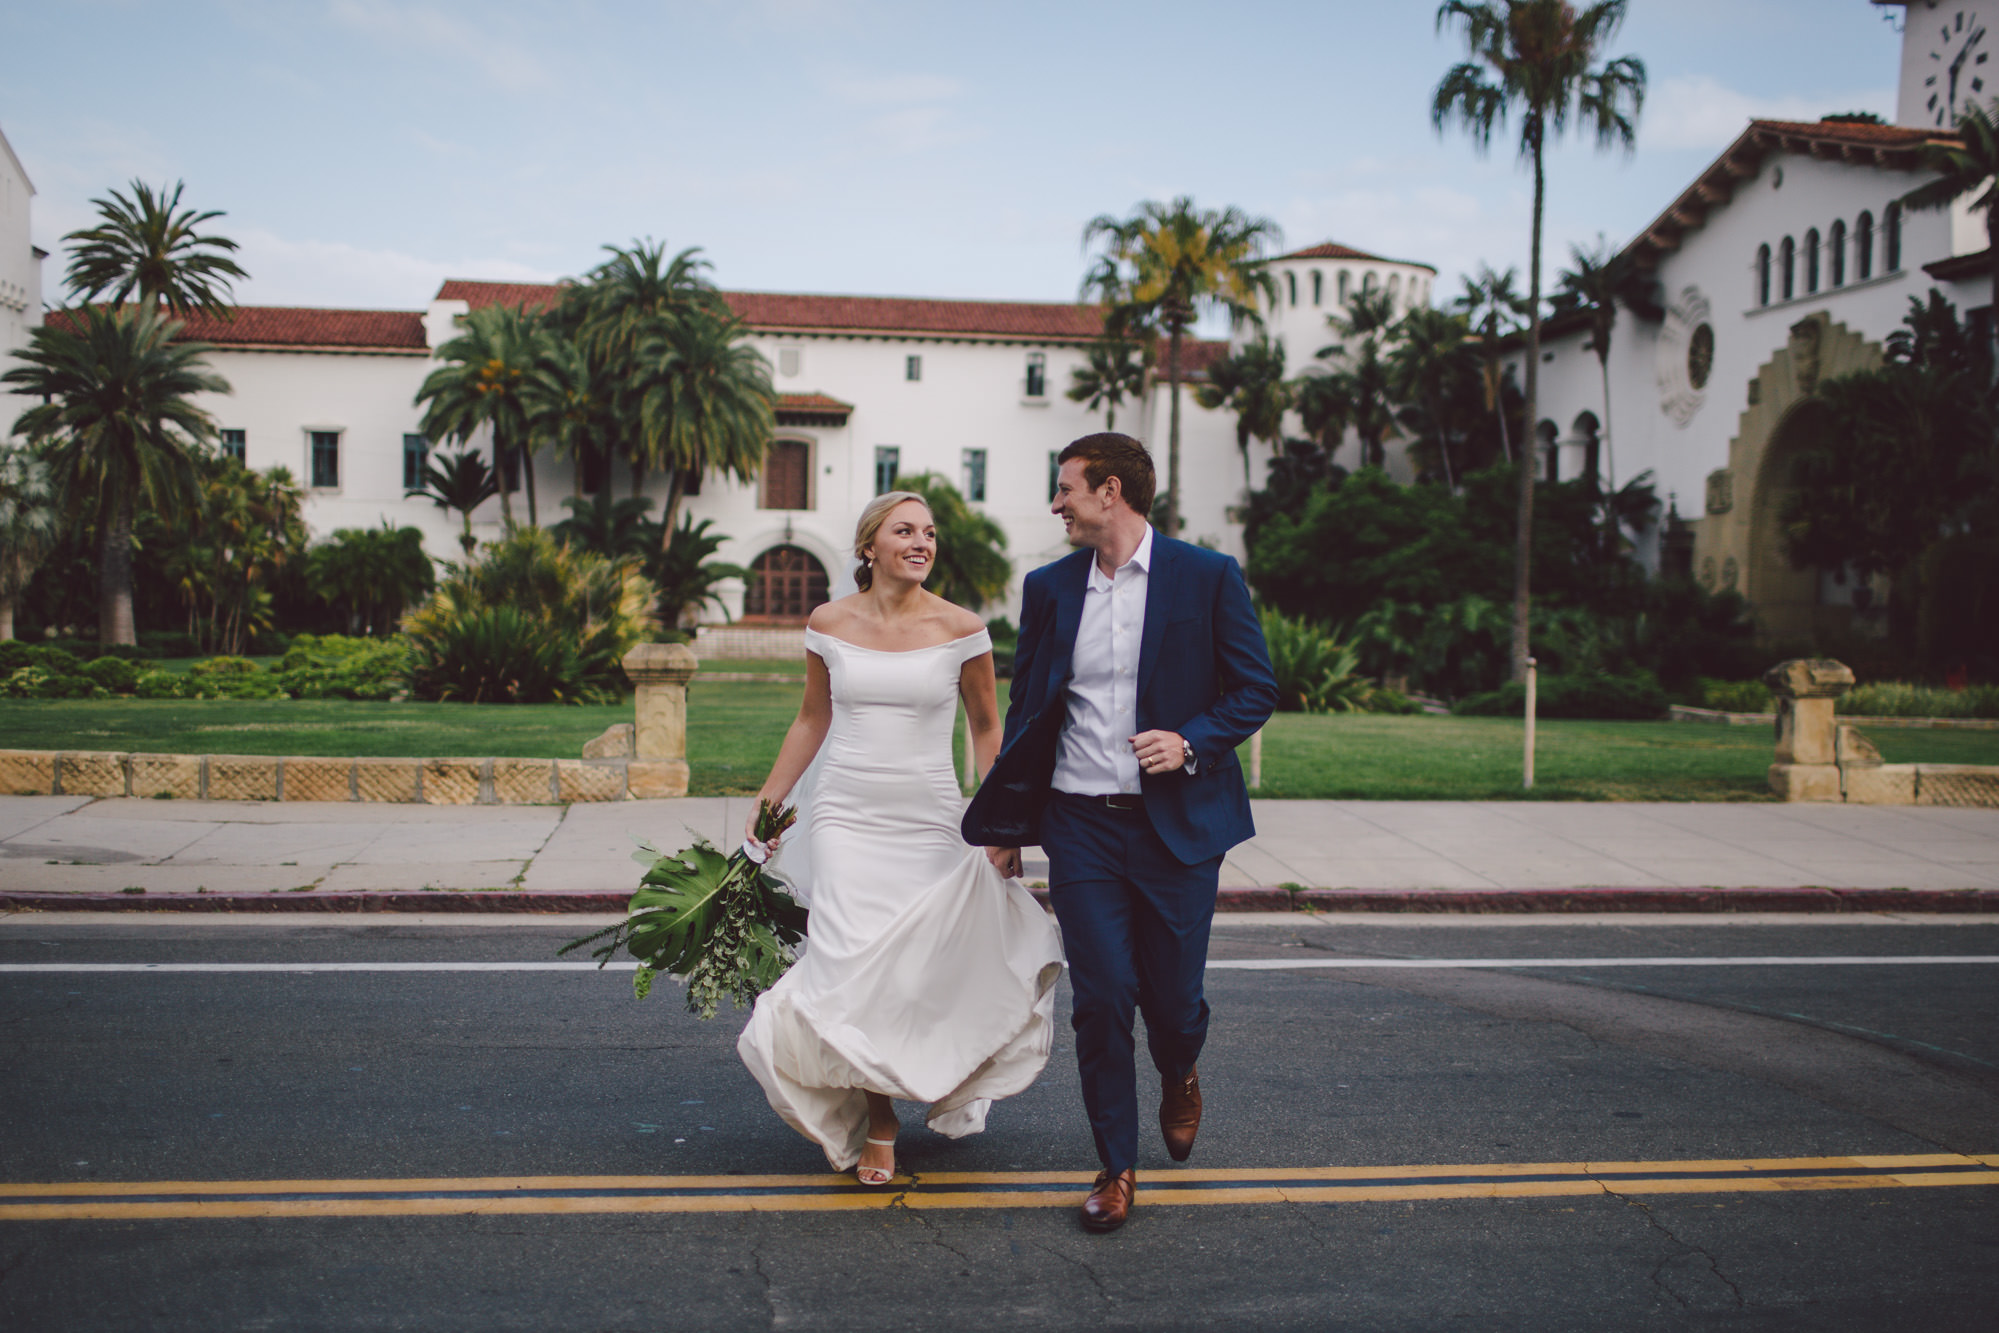 Your wedding is a once in a lifetime experience -